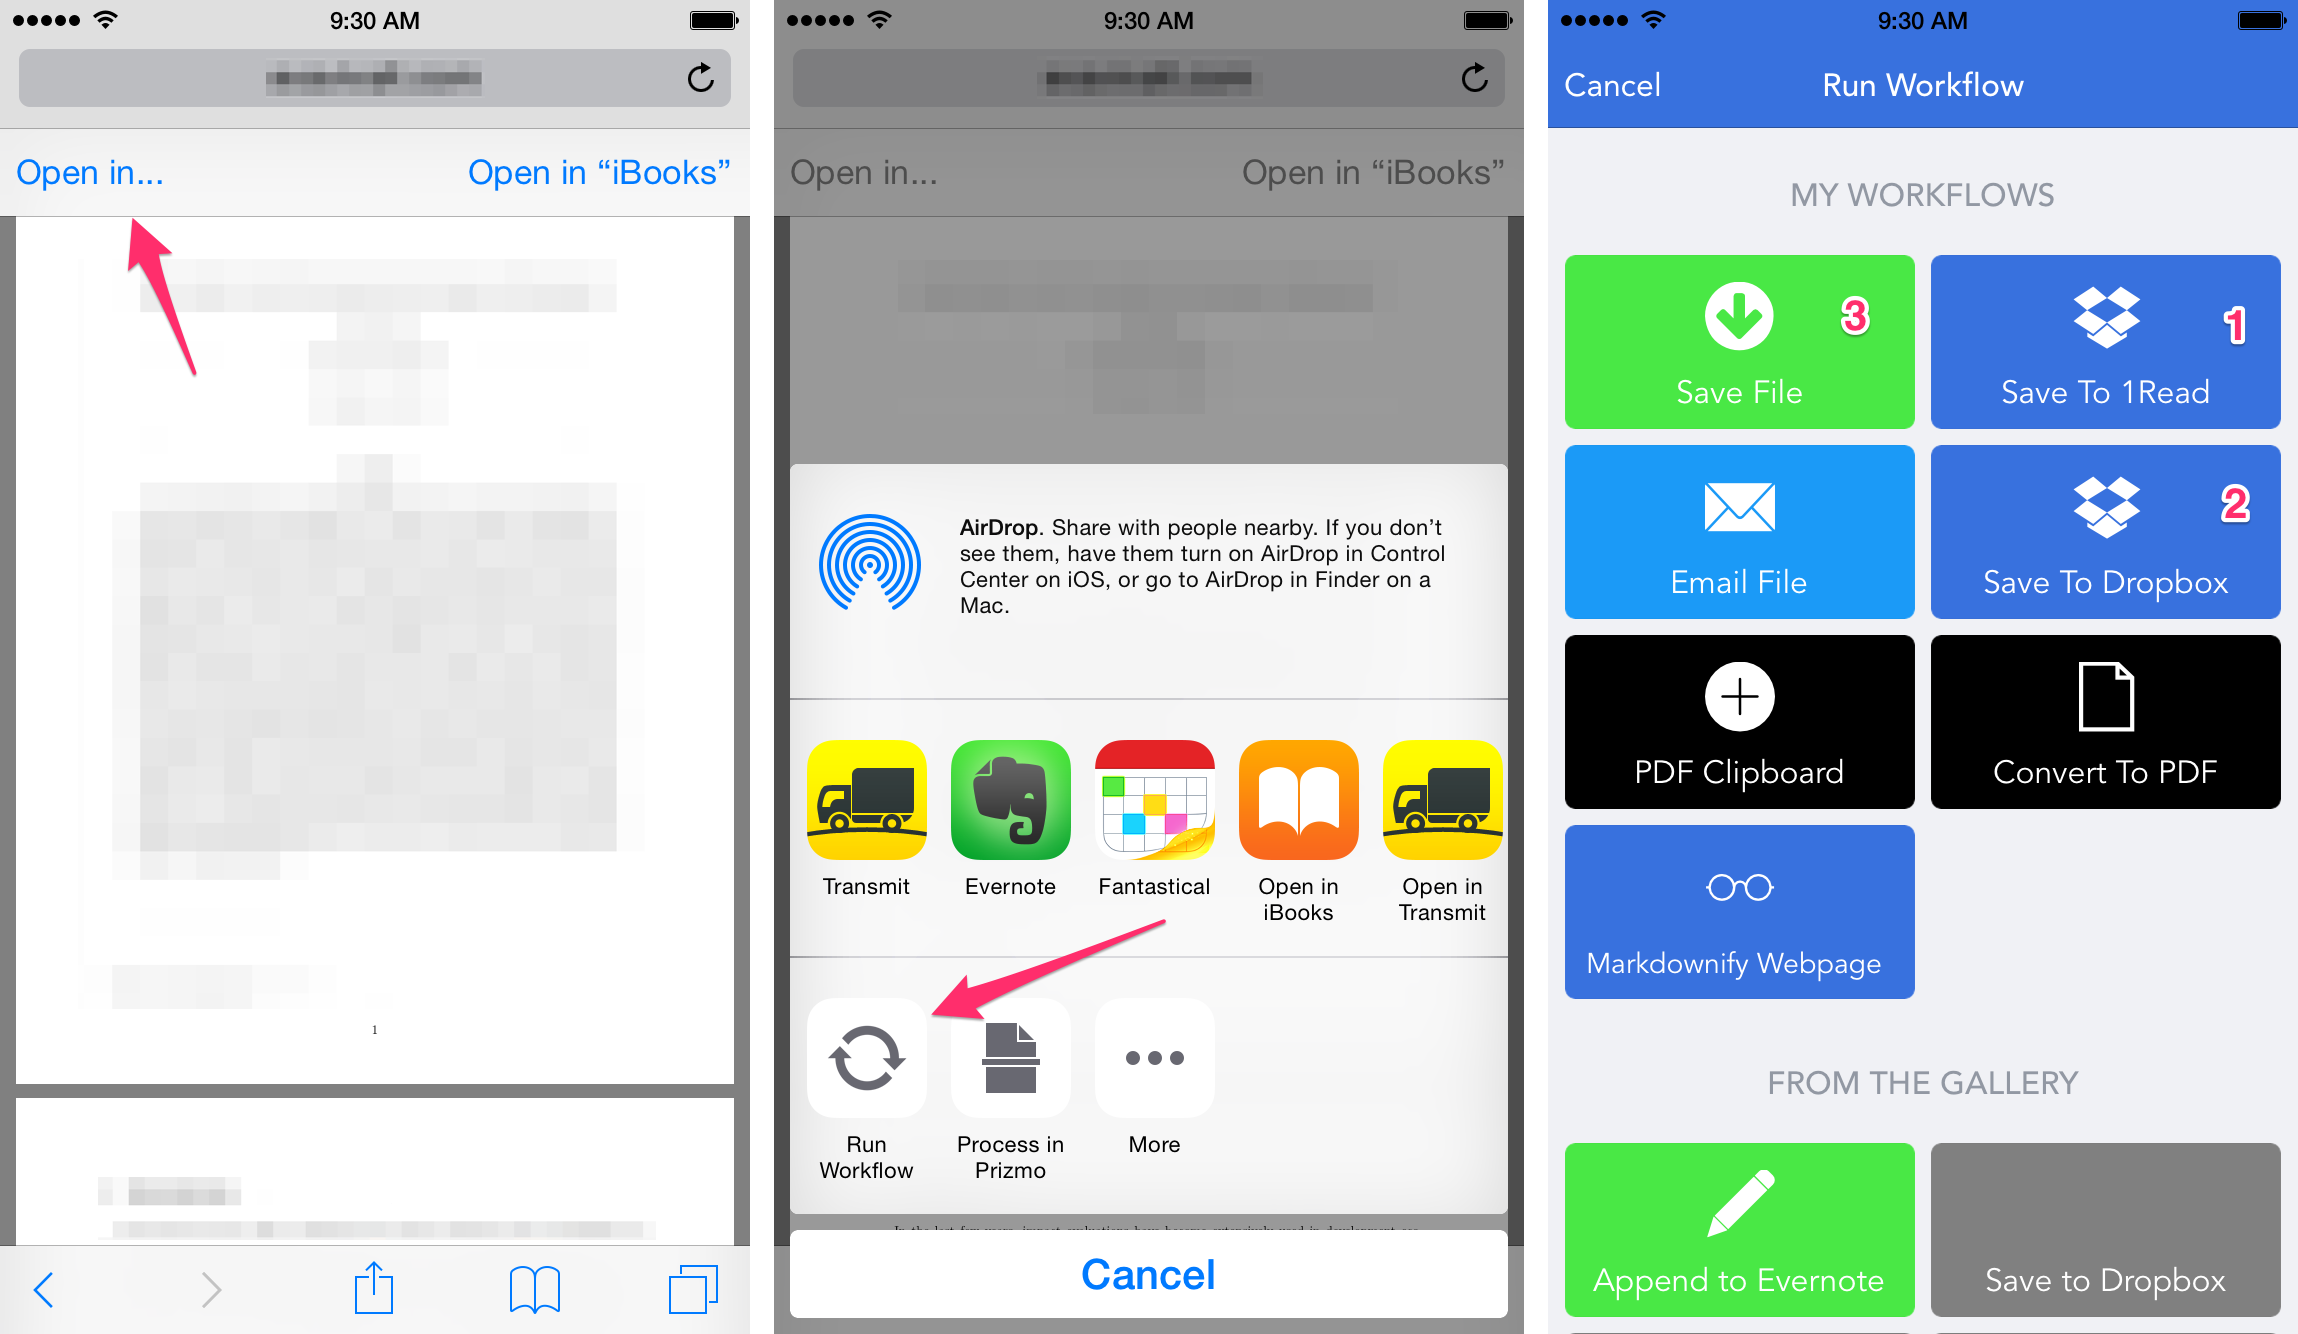 Save files on iOS with Workflow – Teddy Svoronos